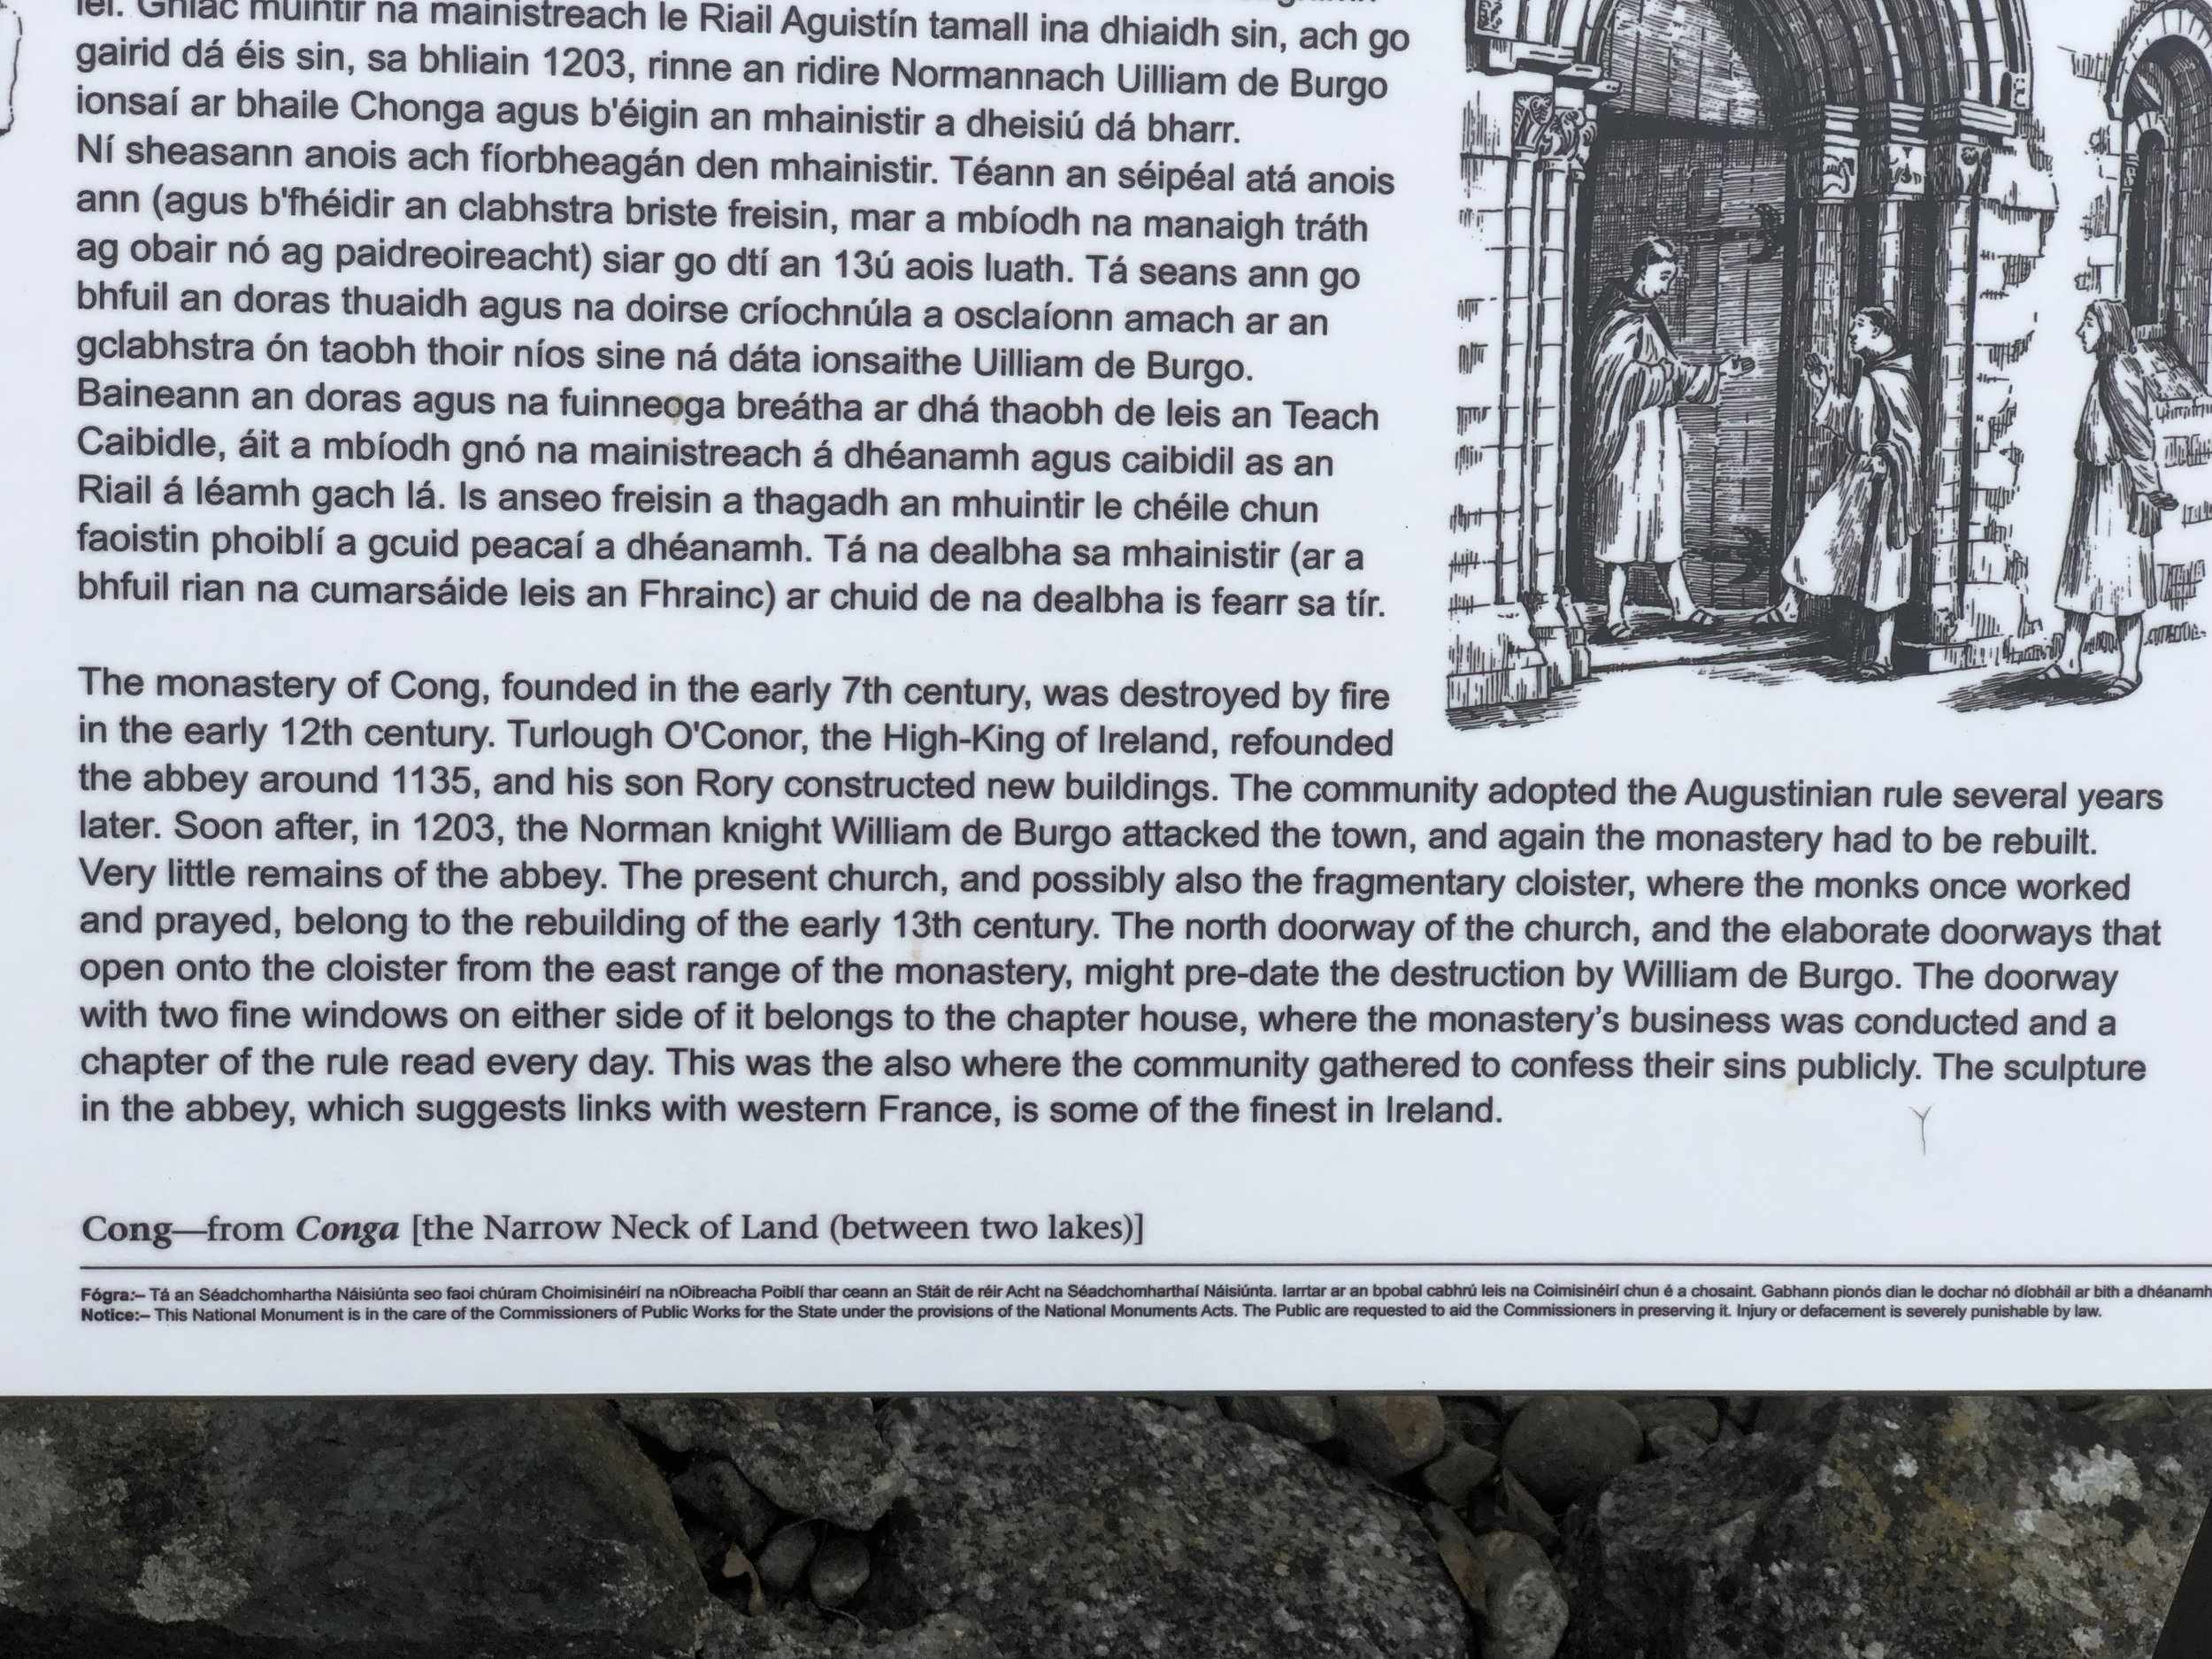 The inscription on this plaque outlines the history of the monastery in Cong, which is typical of the ones we visited during our travels.